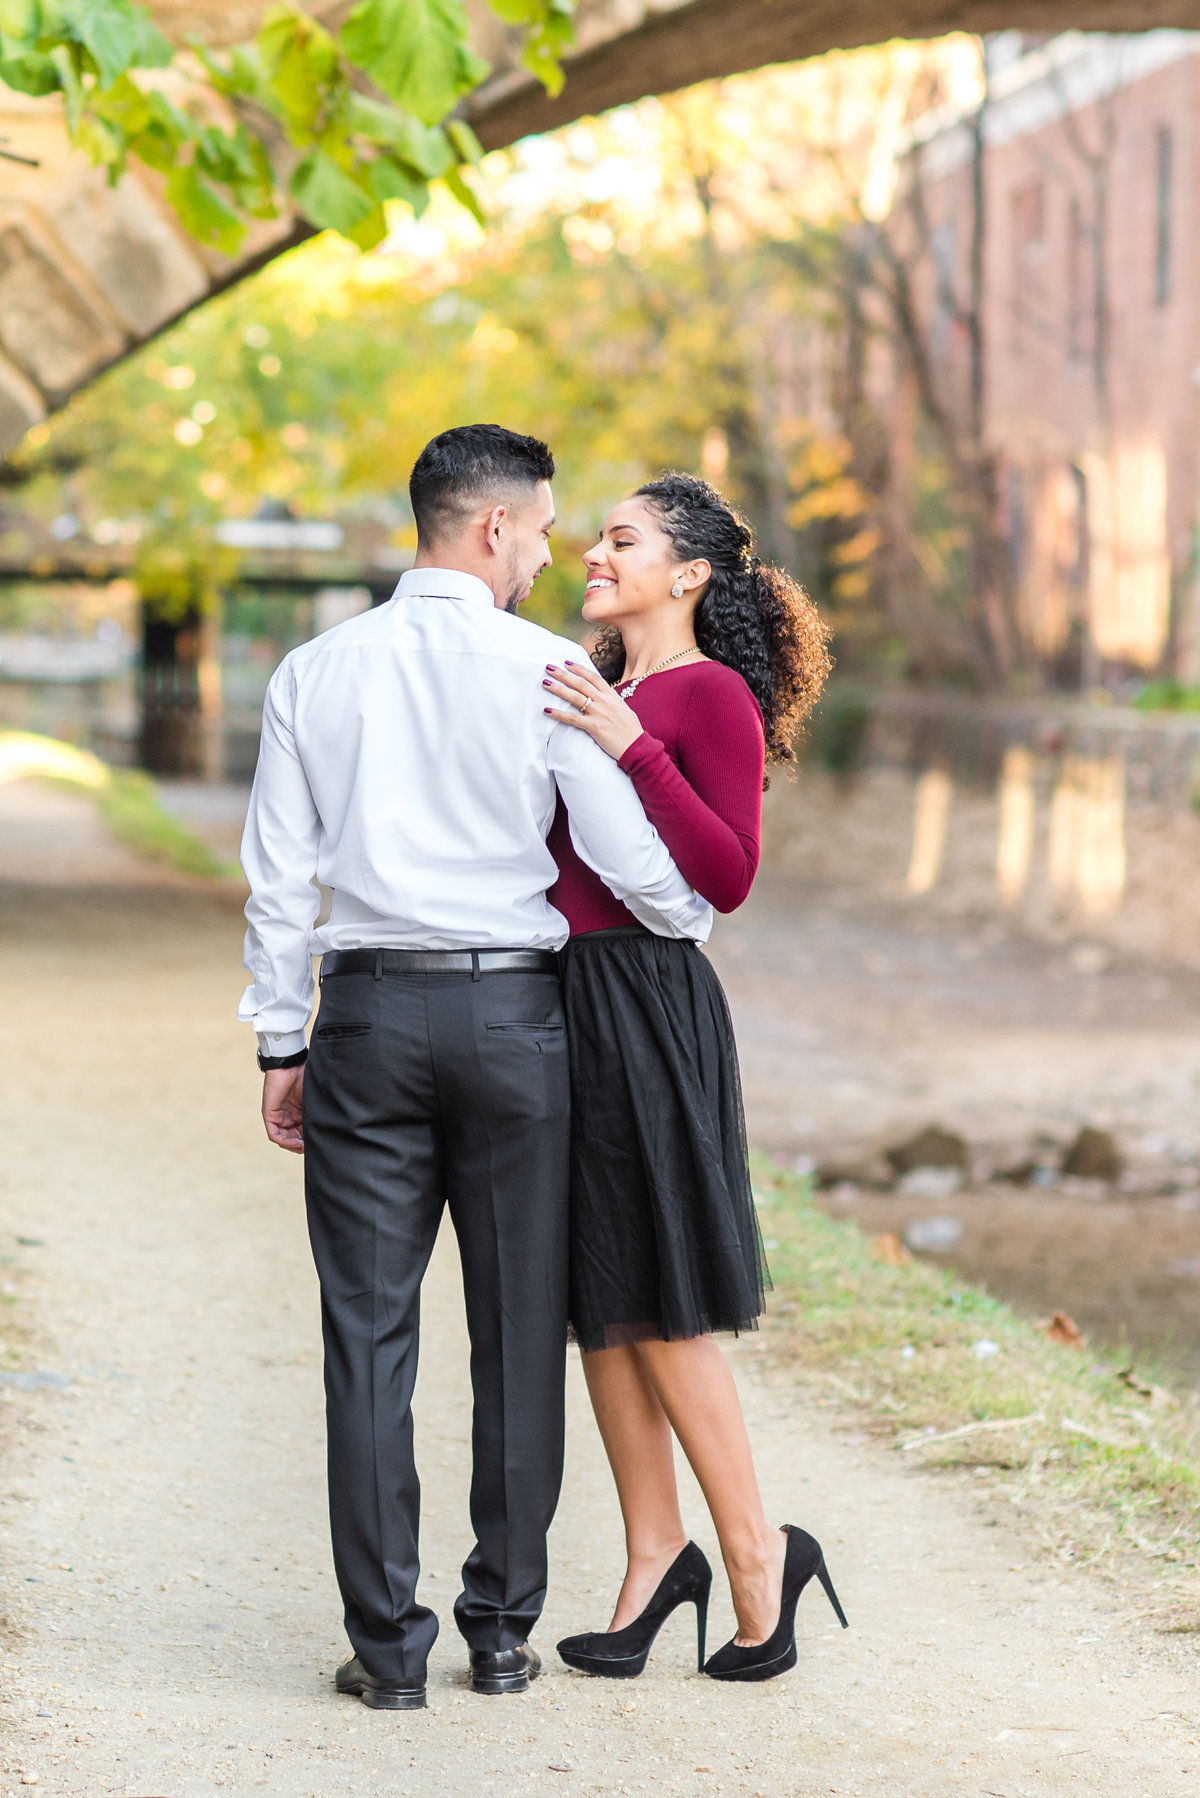 5-reasons-for-an-engagement-session-0001-4